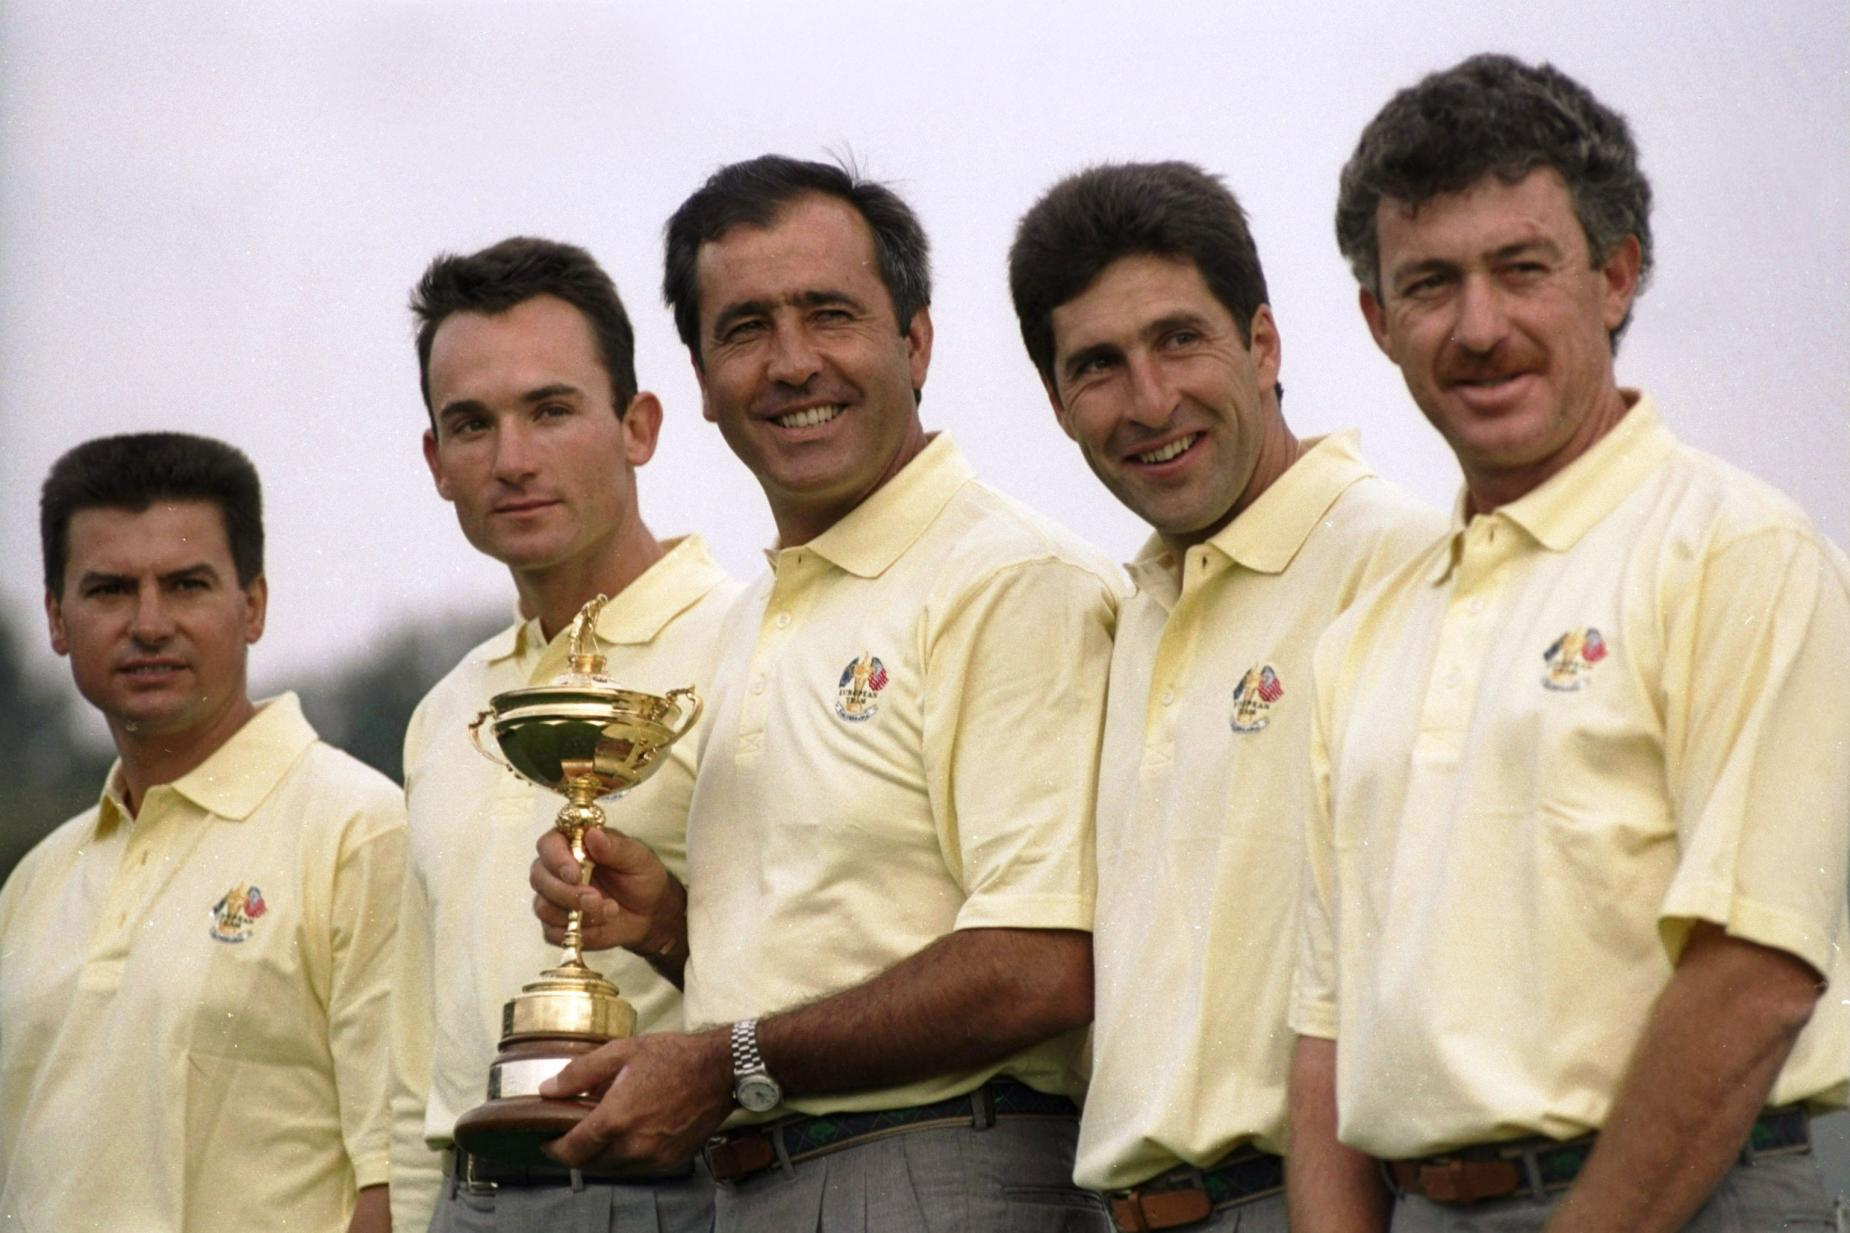 spaniards-ryder-cup-1997.jpg